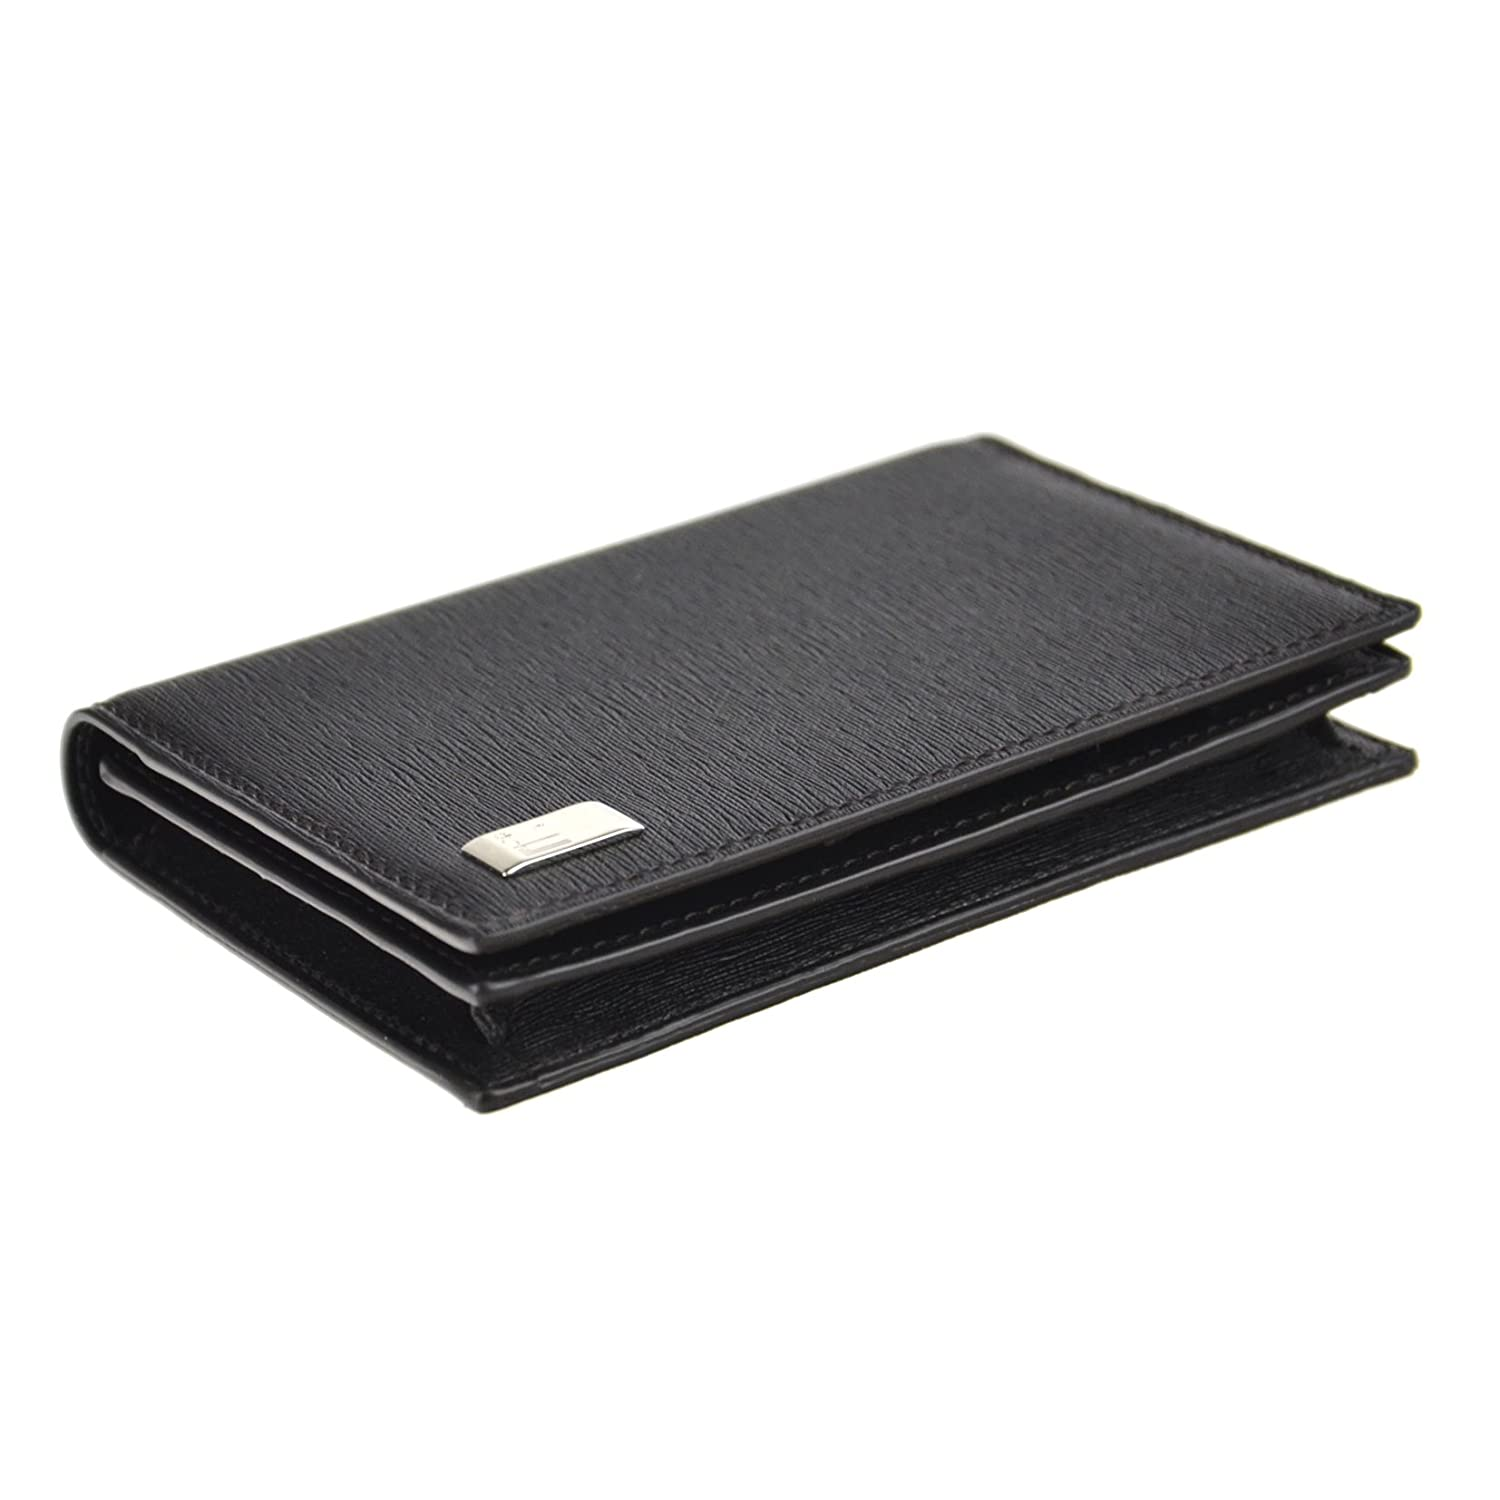 Dunhill Fp4700e Business Card Holder at Amazon Men\'s Clothing store: